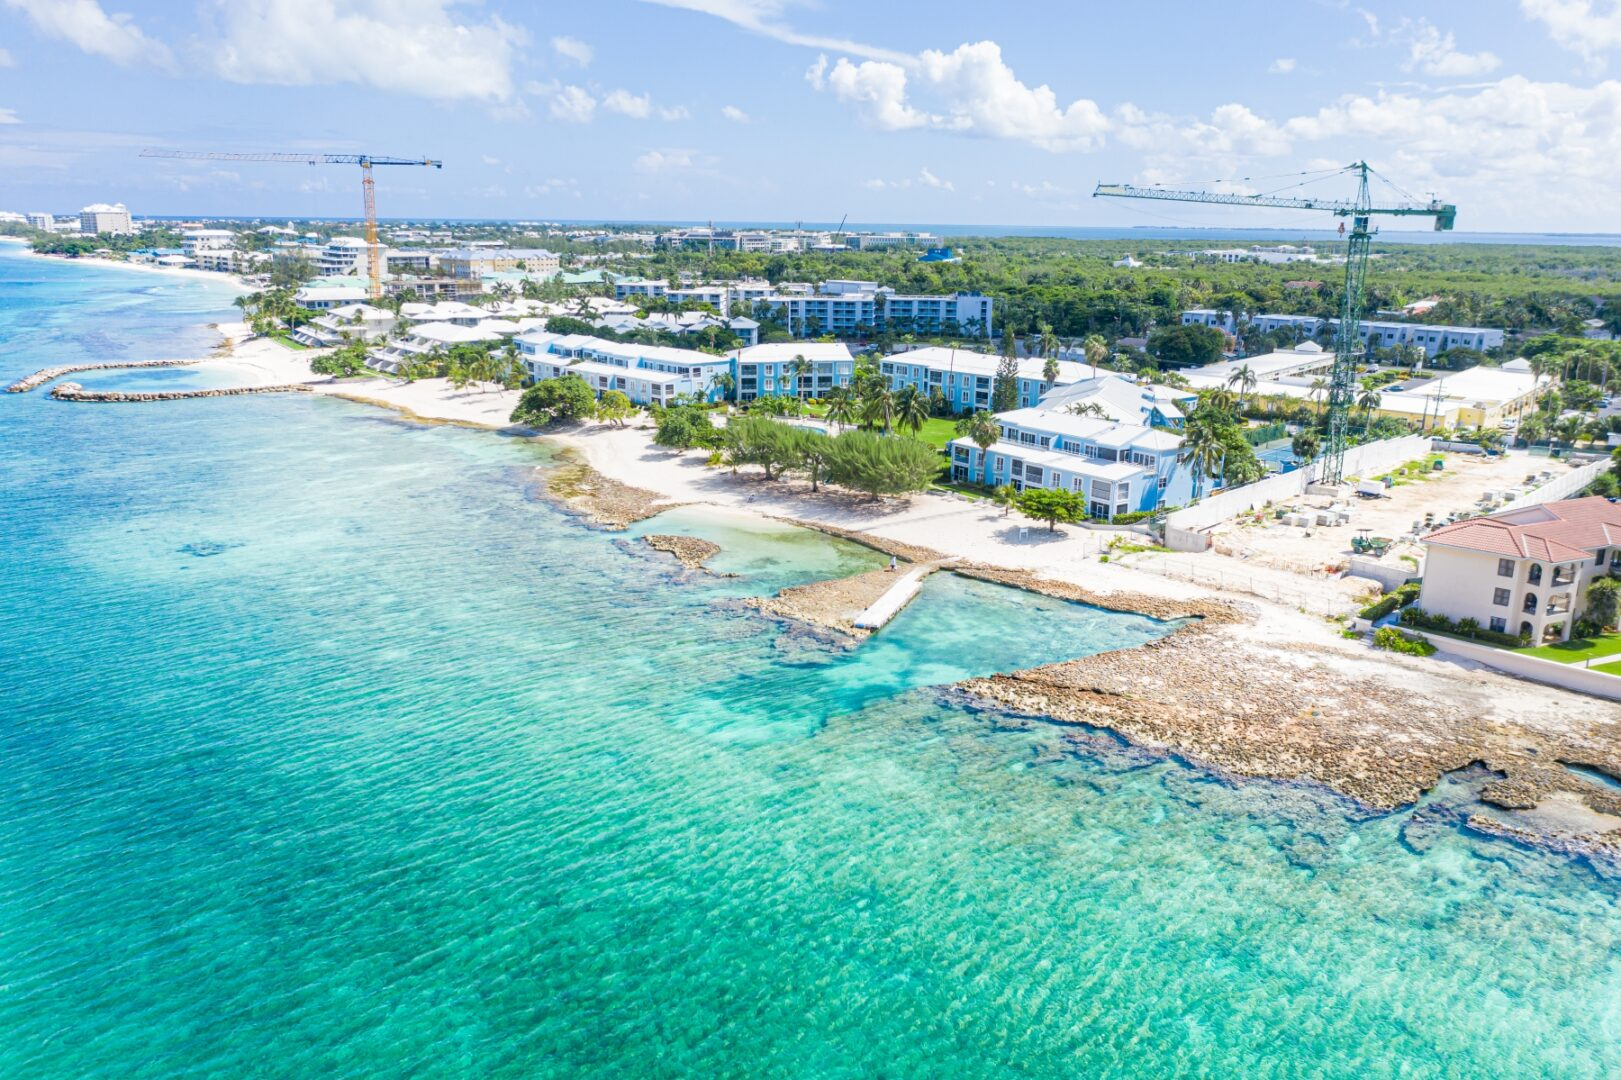 Unprecedented growth on Seven Mile Beach in the Cayman Islands